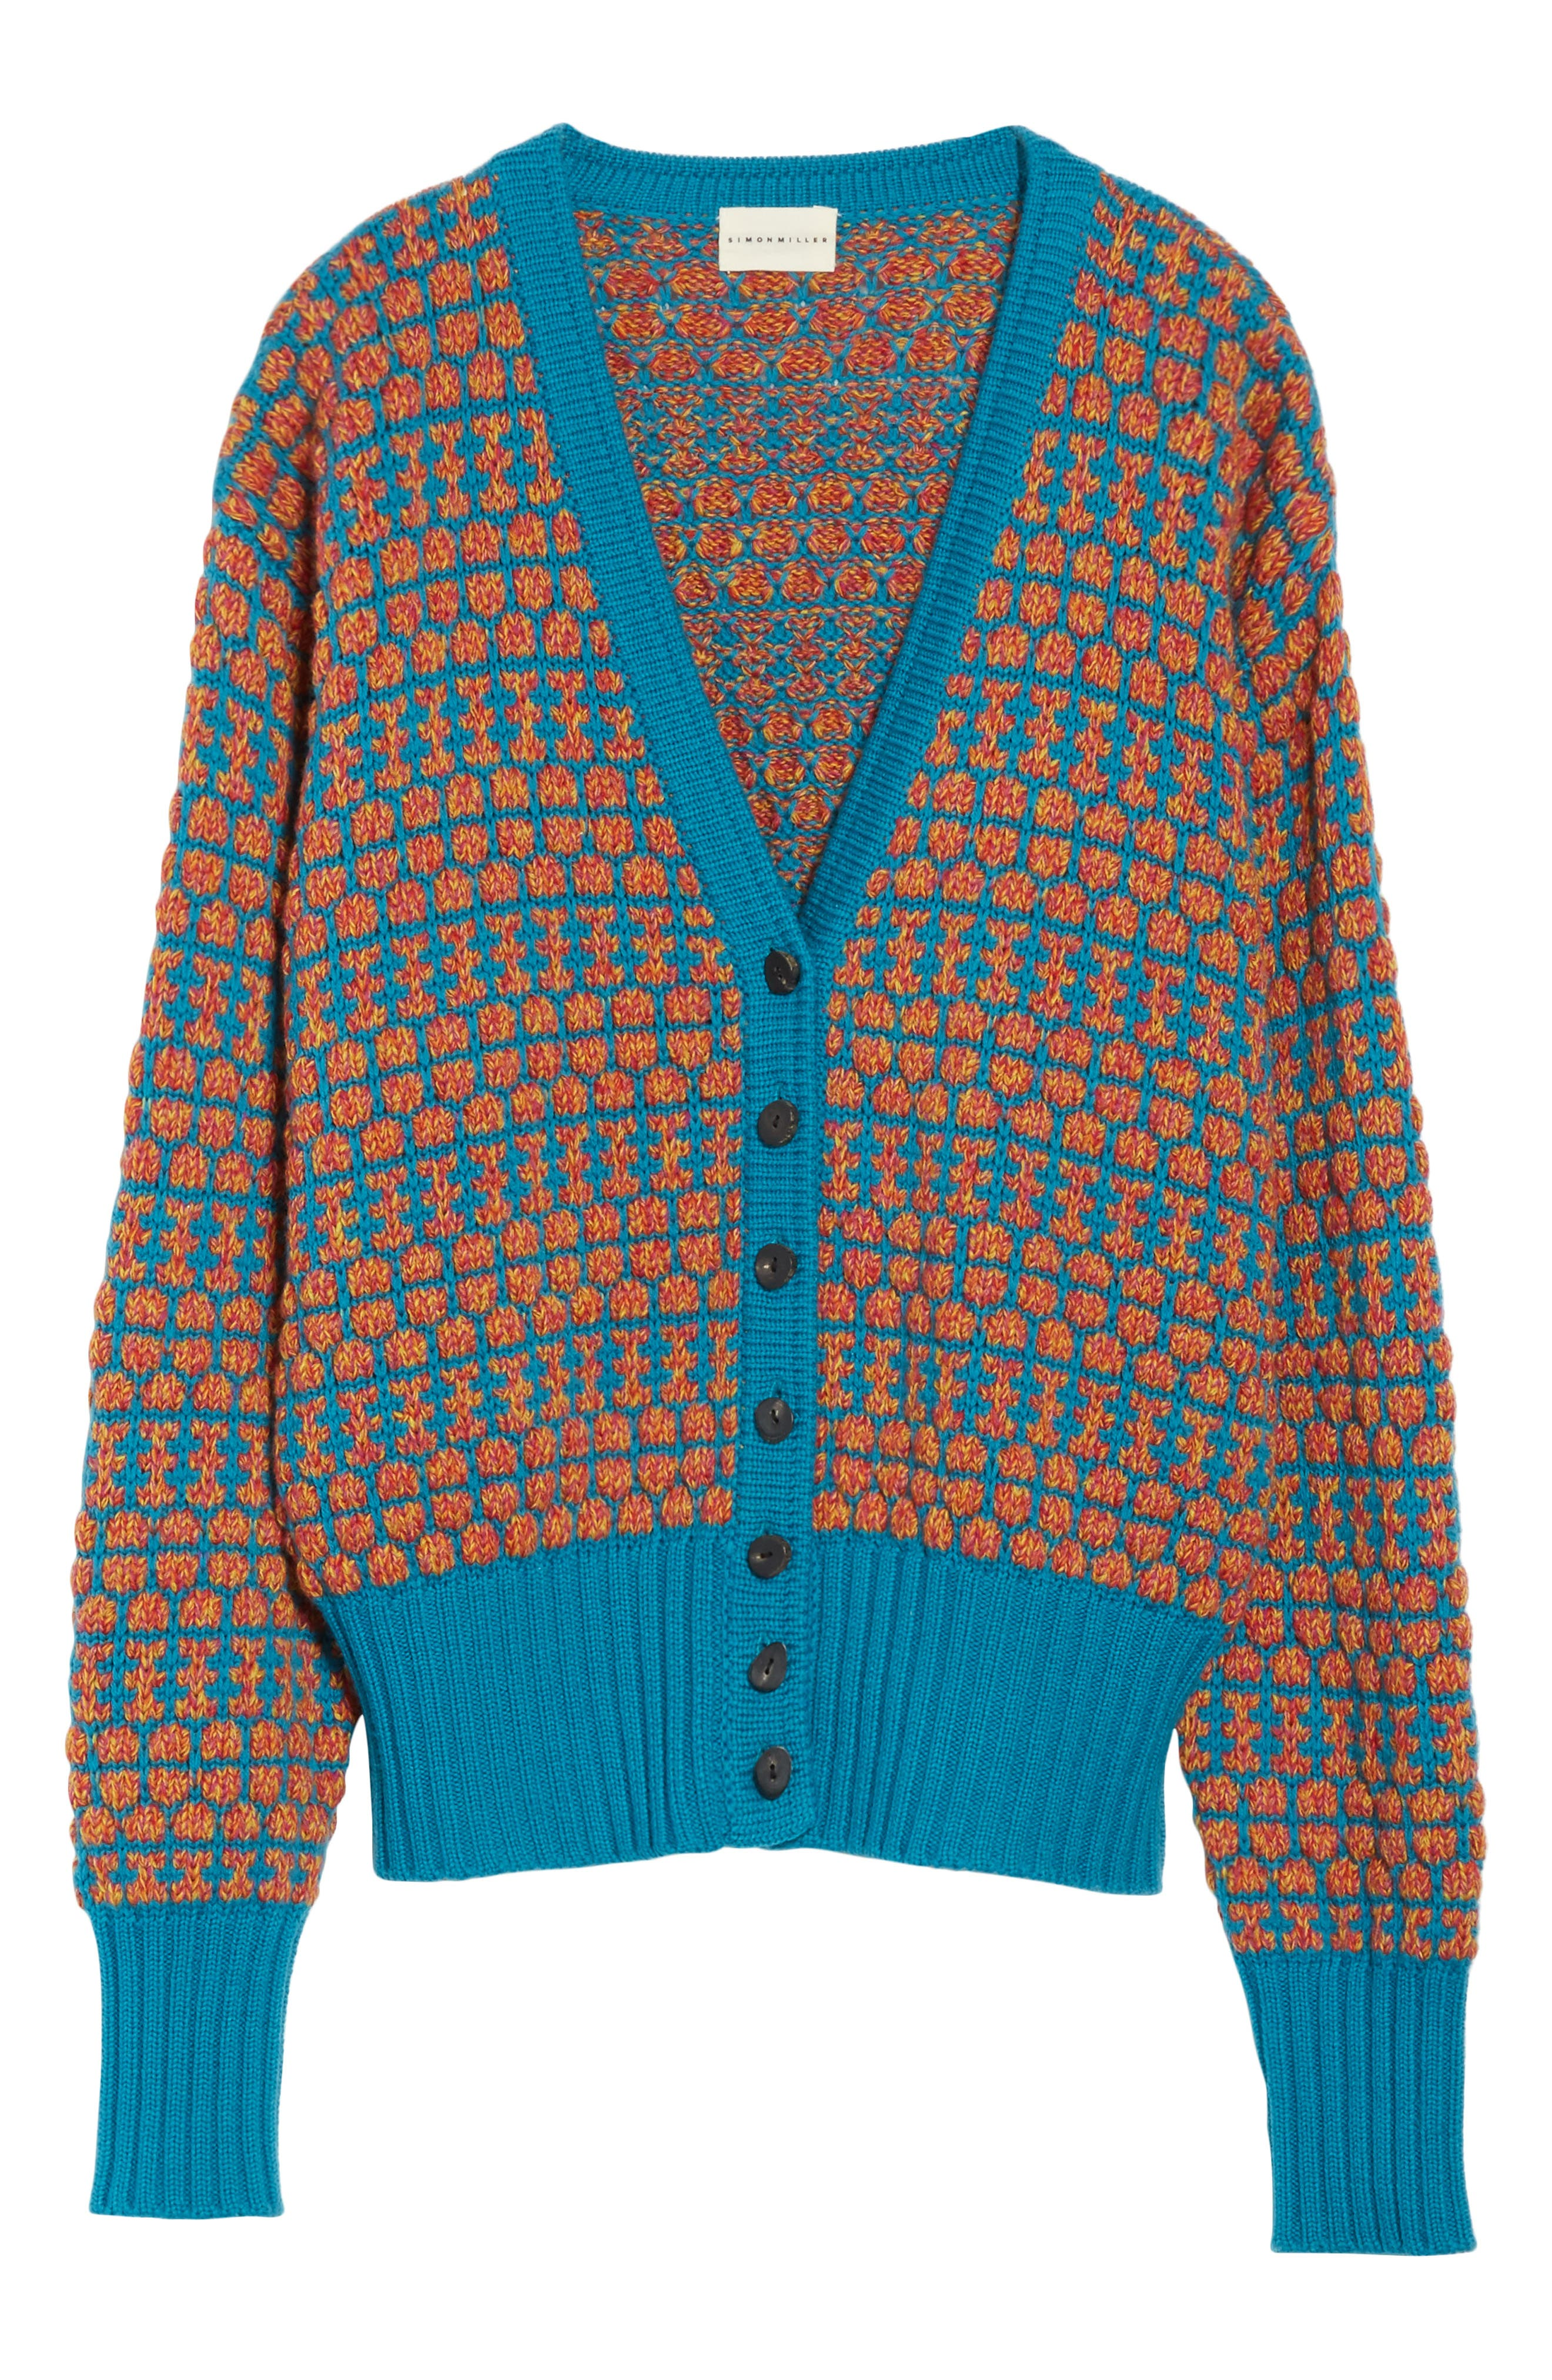 Izee Floral Button Cardigan,                             Alternate thumbnail 6, color,                             400